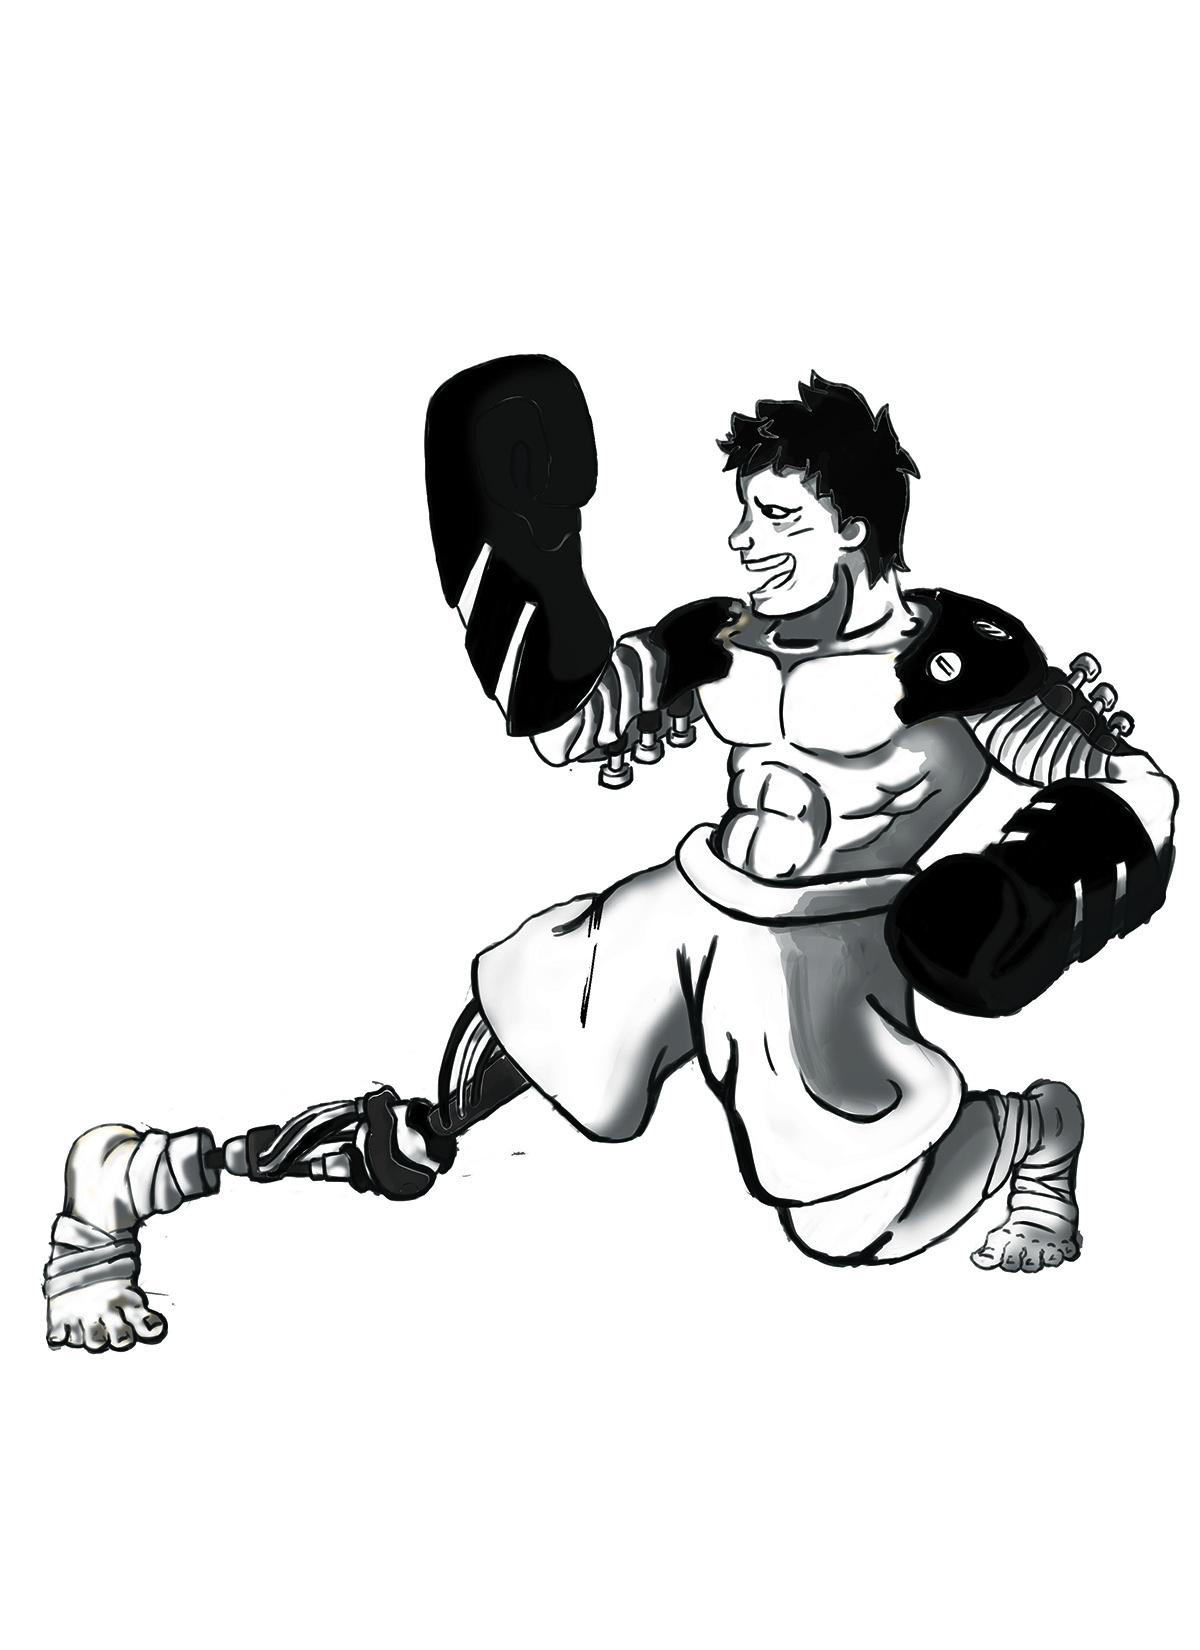 Character design of a man with big boxing gloves.